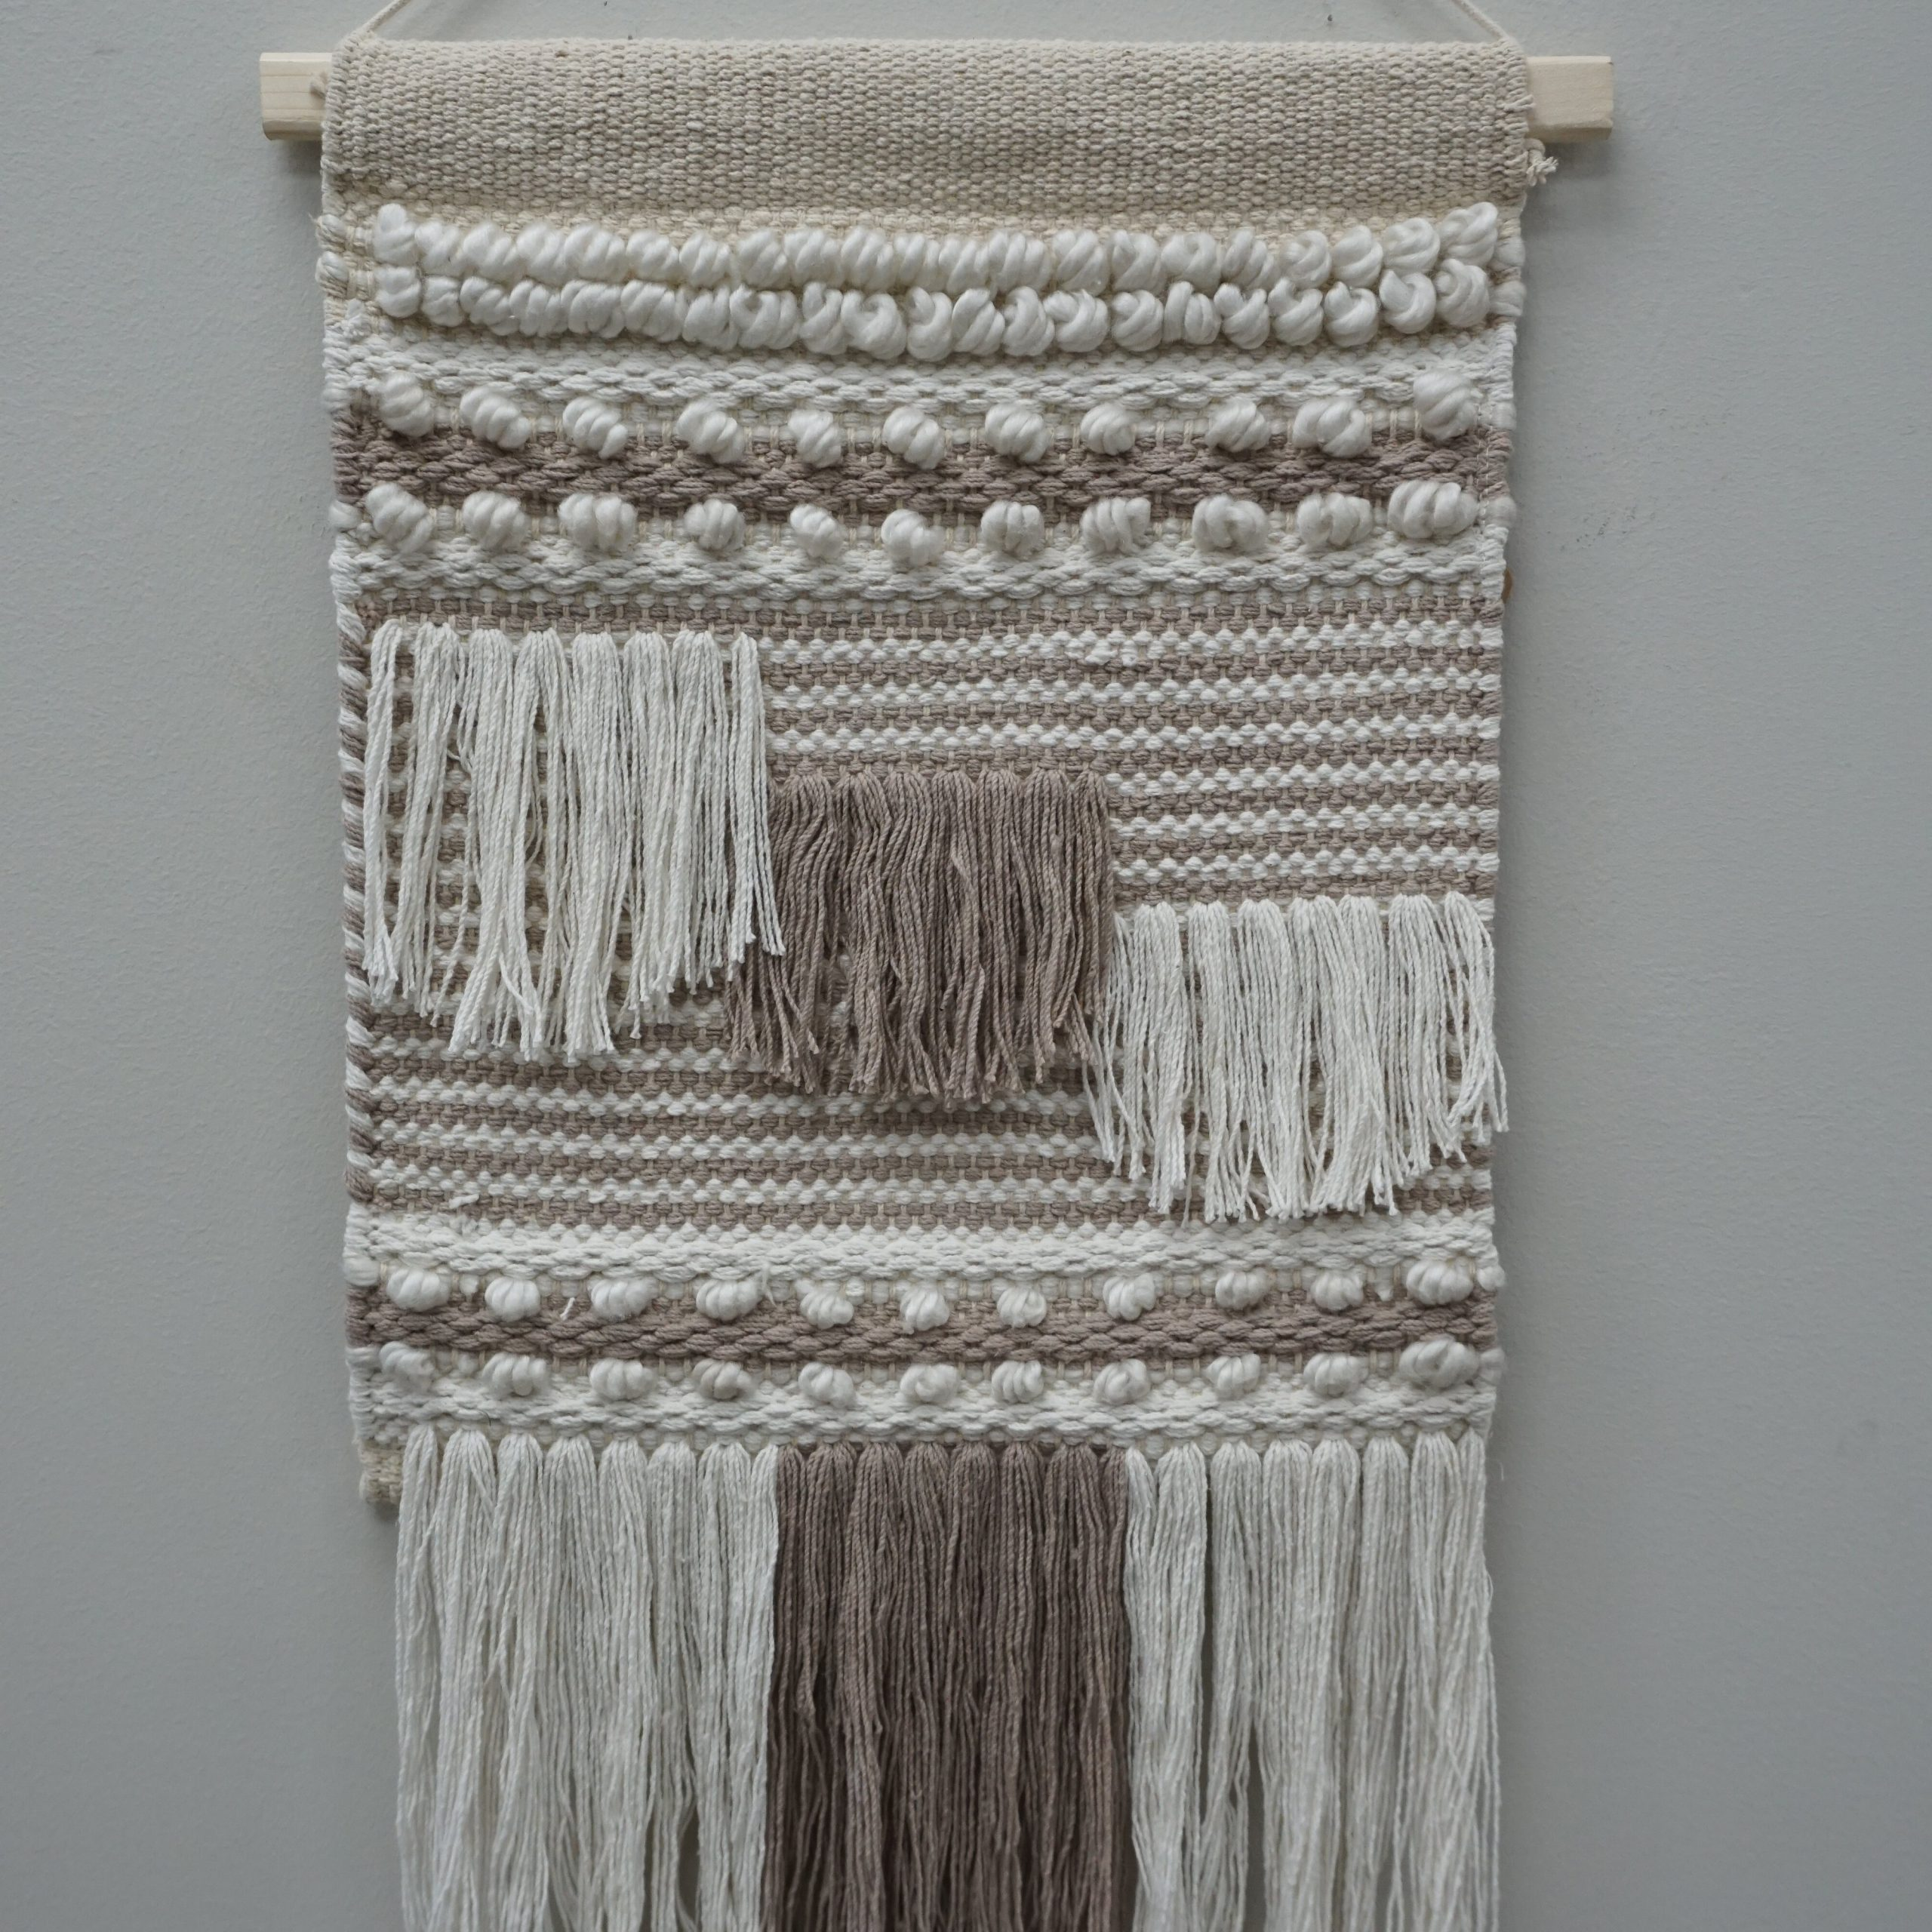 Most Current Blended Fabric Ranier Wall Hangings With Hanging Accessories Included Pertaining To Arabic Art Tapestries You'll Love In (View 8 of 20)